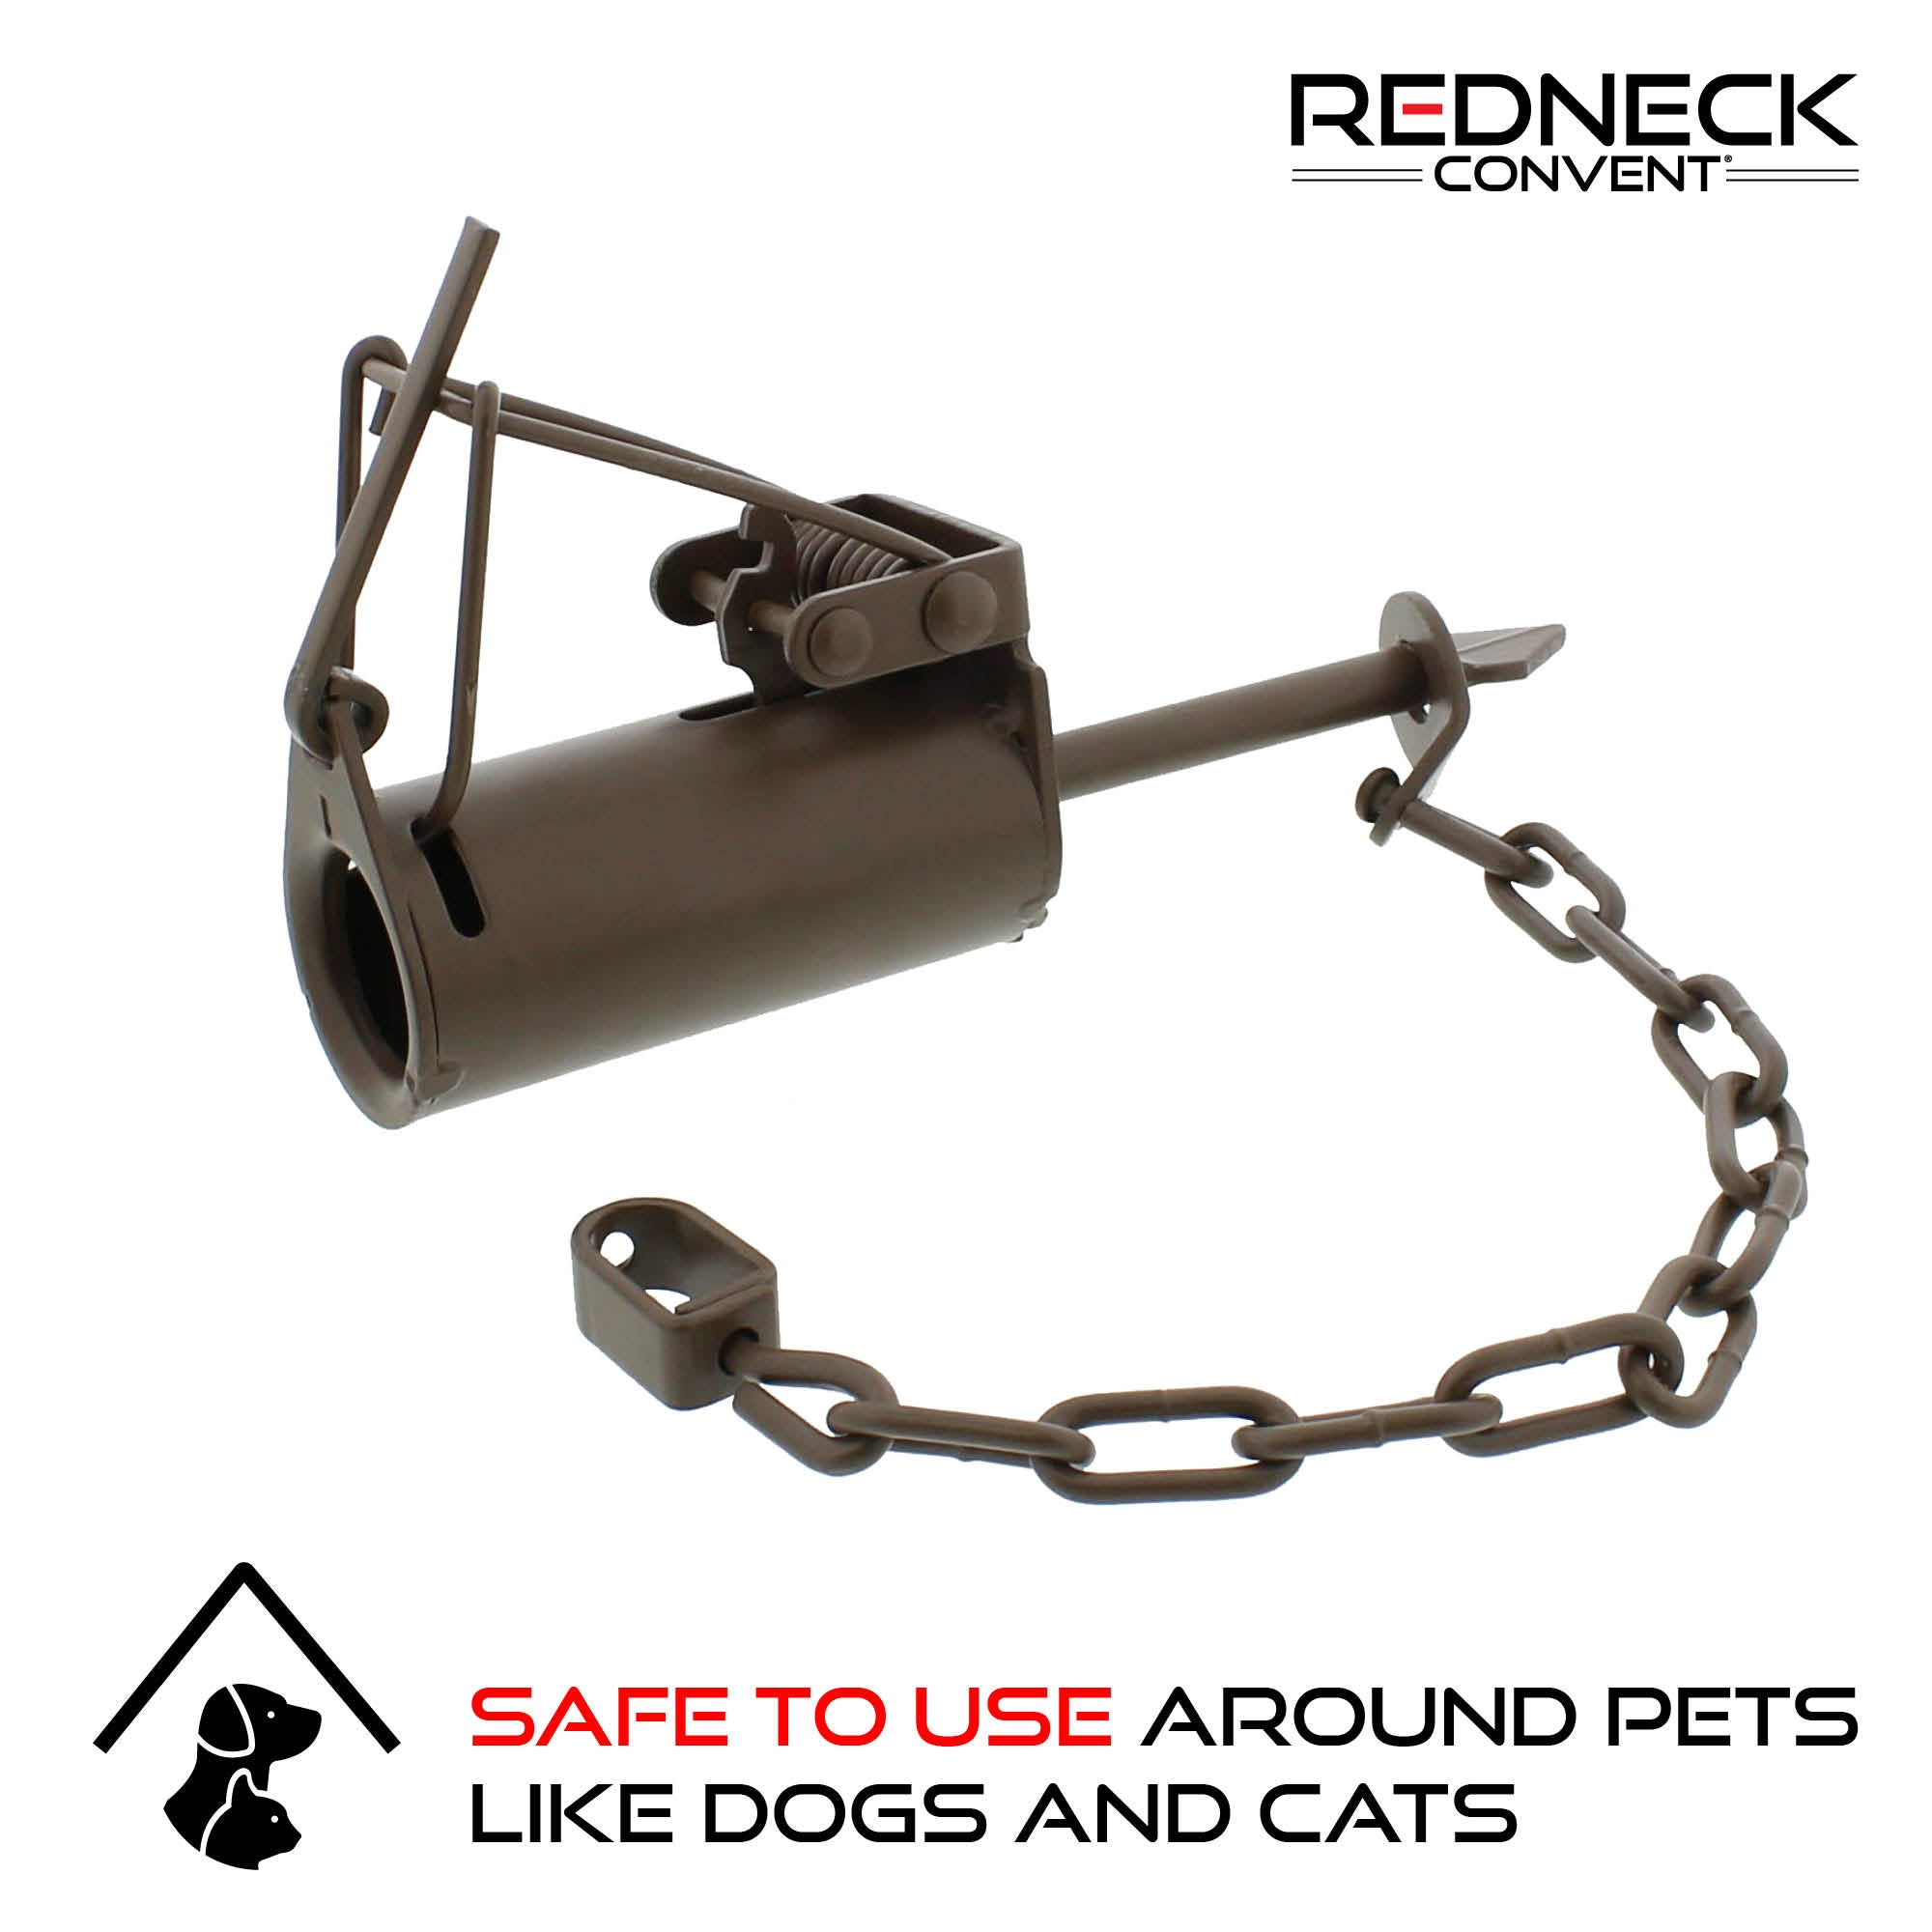 Dog-Proof DP Animal Leg Trap 4-Pack, Pet-Safe / Pet-Friendly